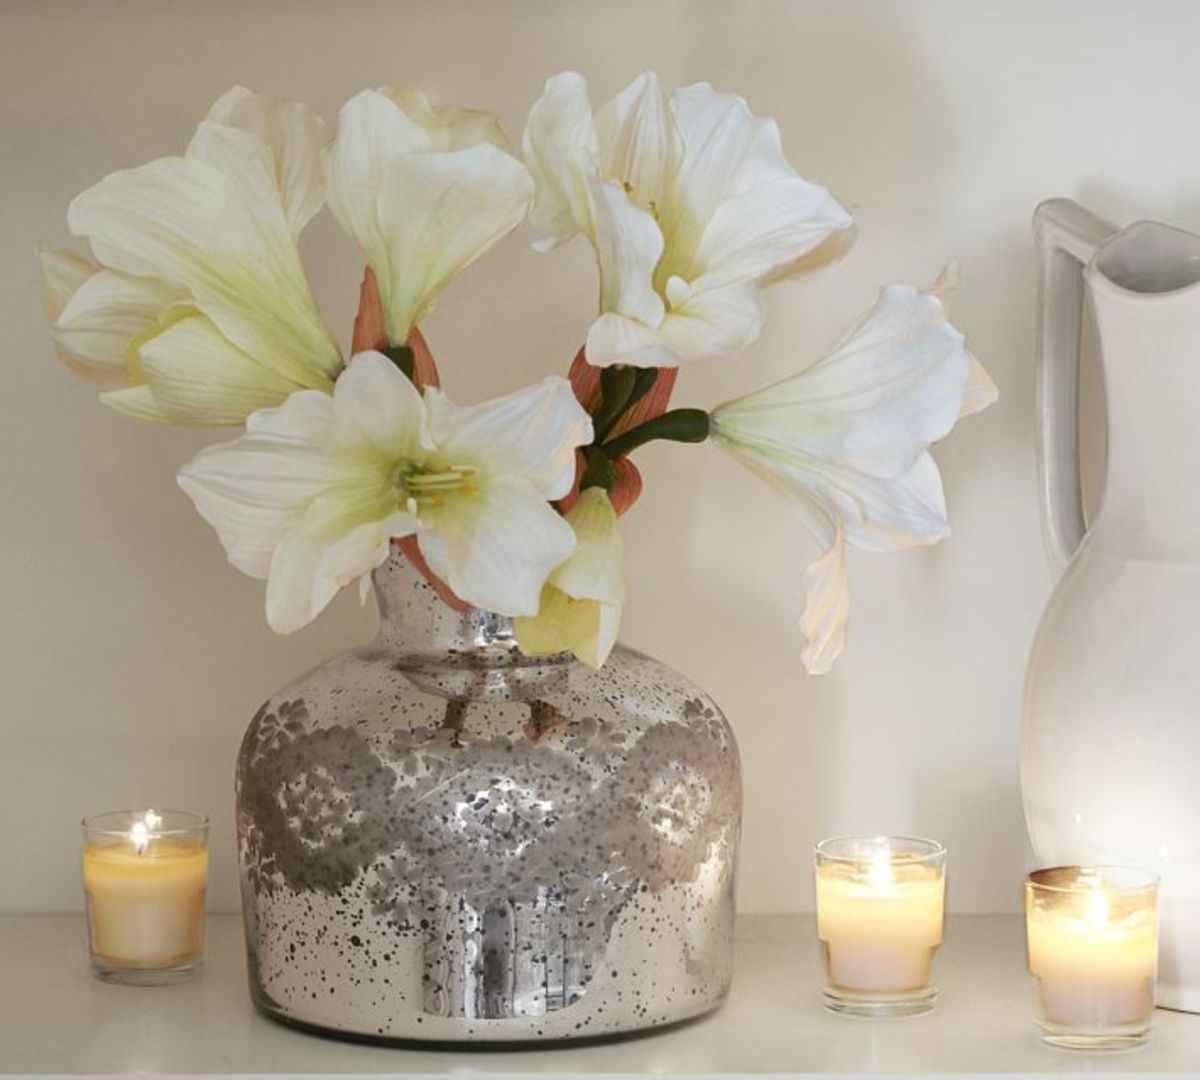 This is a perfect holiday arrangement for a bathroom or small table.